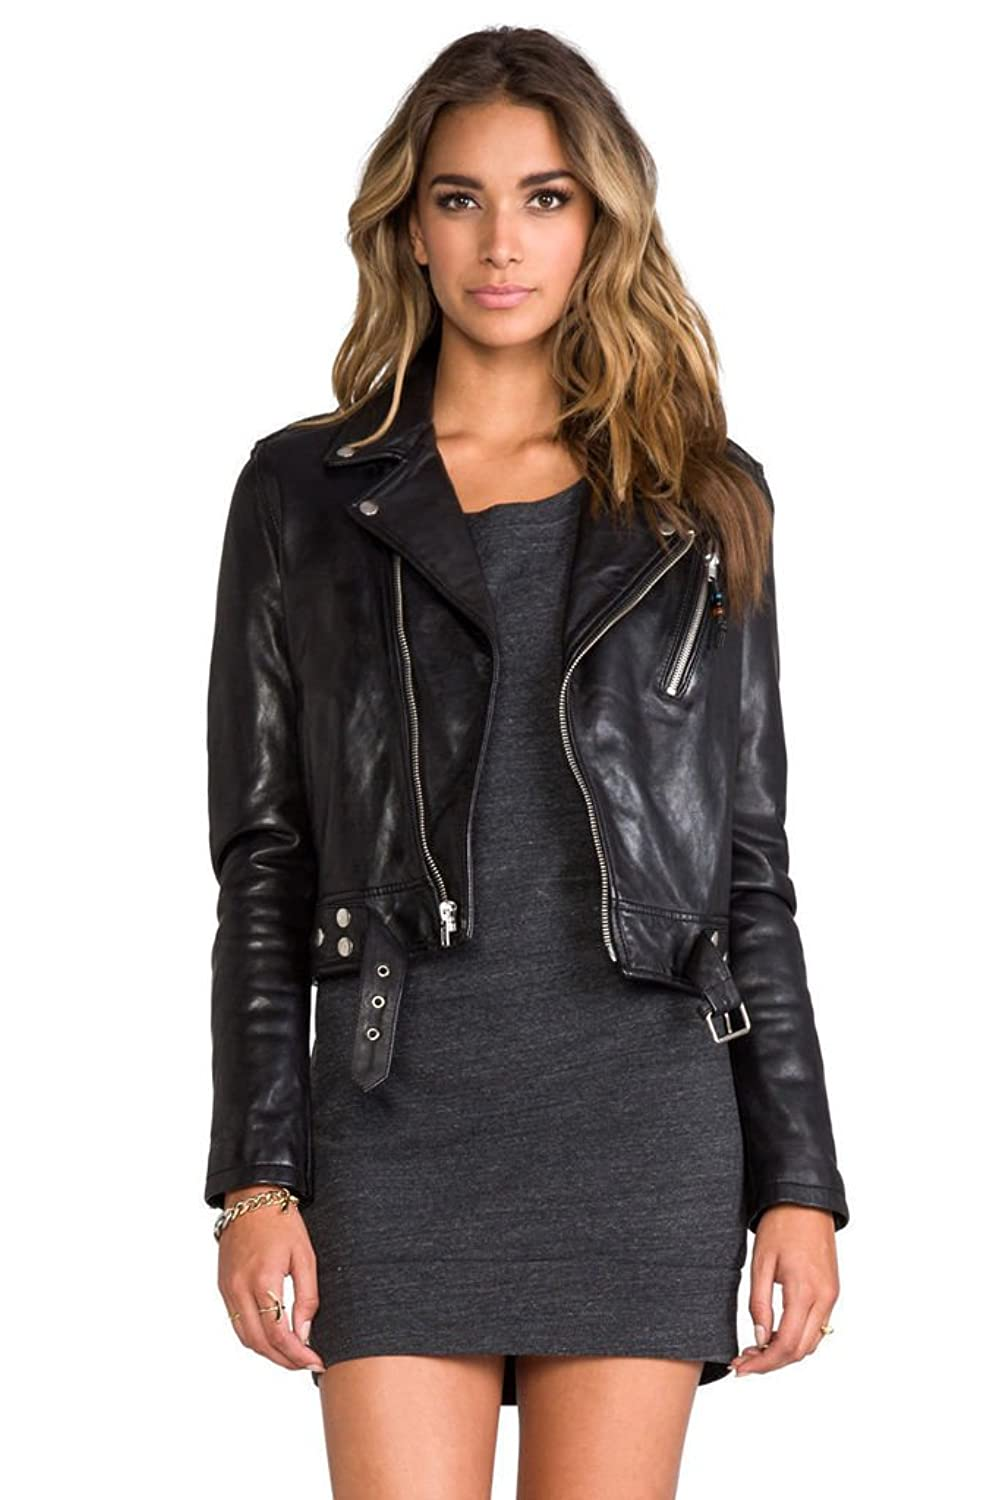 Ladies black leather jacket sale